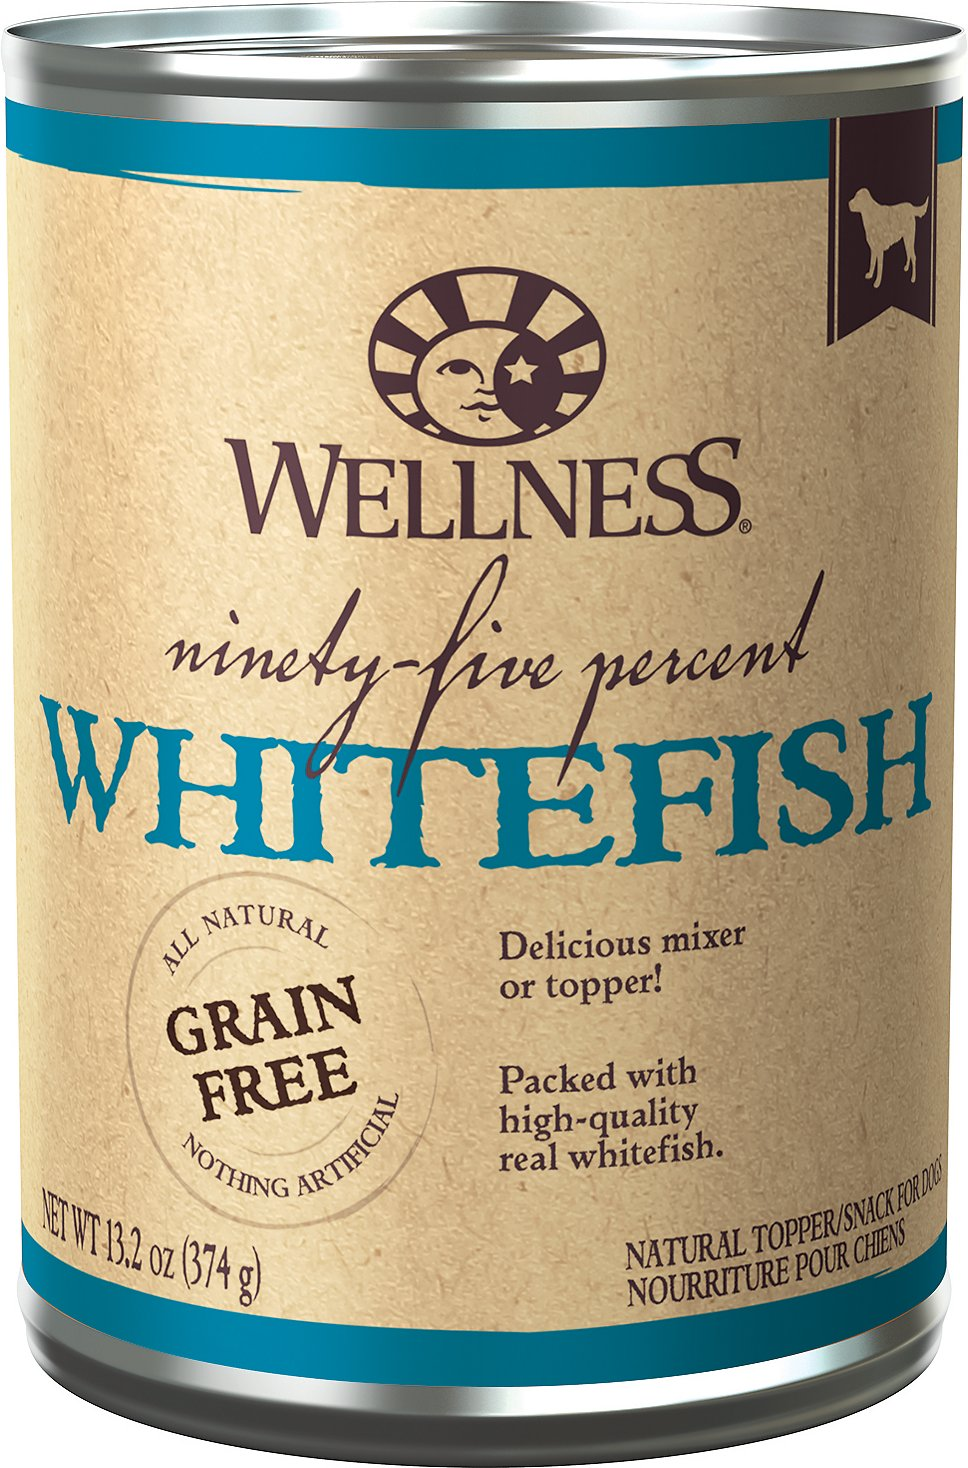 Wellness 95% Whitefish Natural Grain Free Wet Dog Food, 13.2-oz